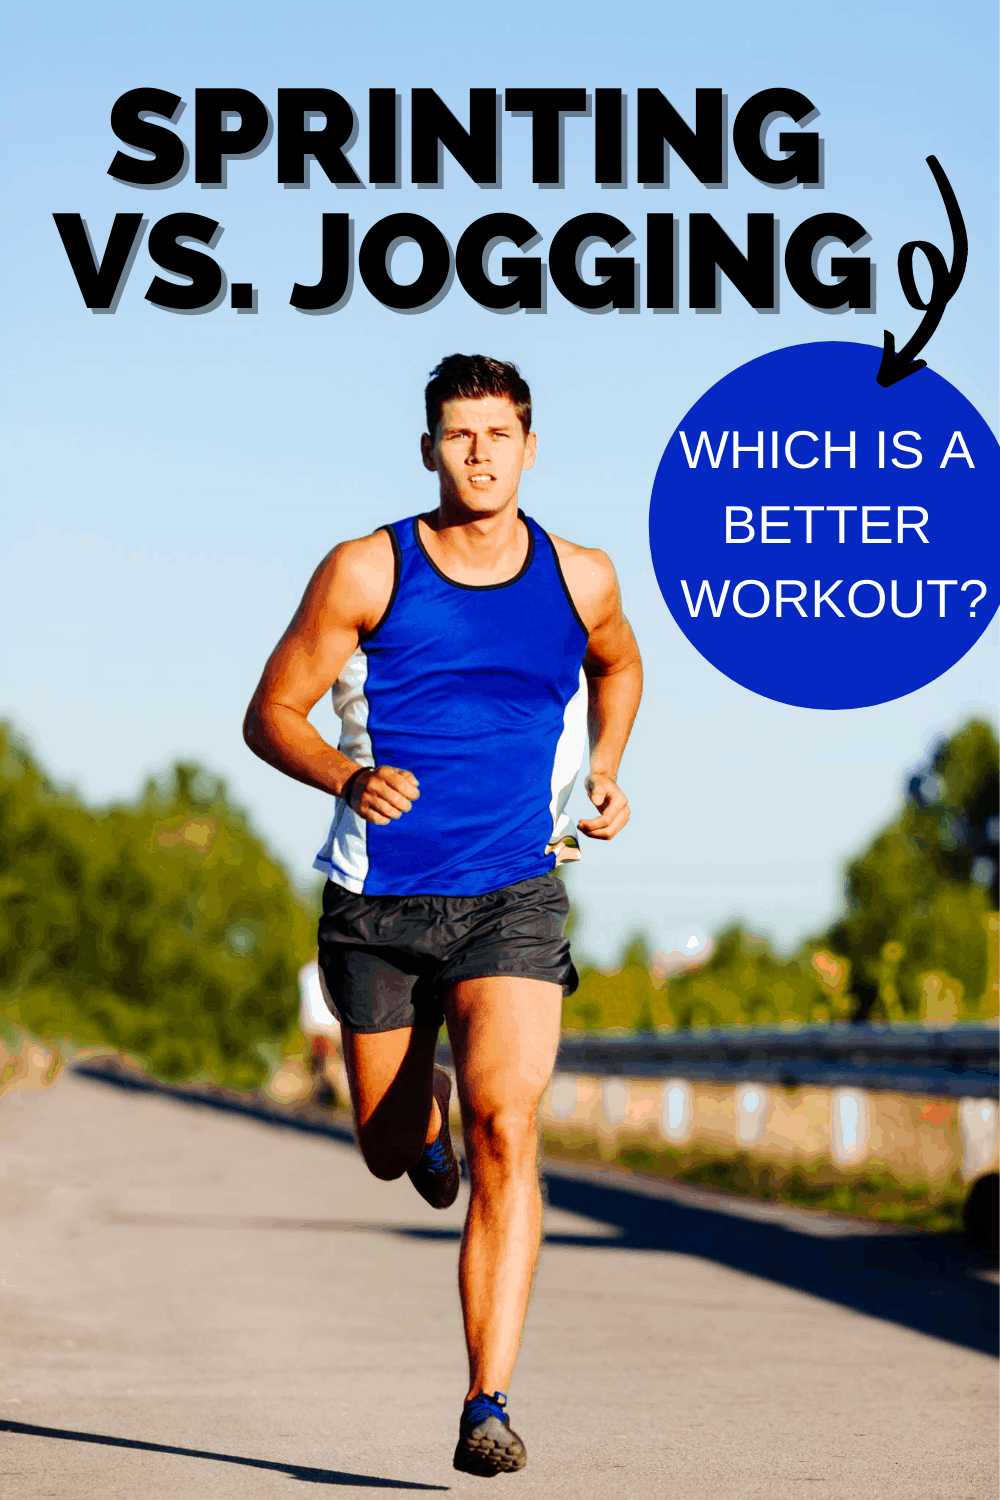 a man running down the street with a text overlay that says sprinting vs jogging